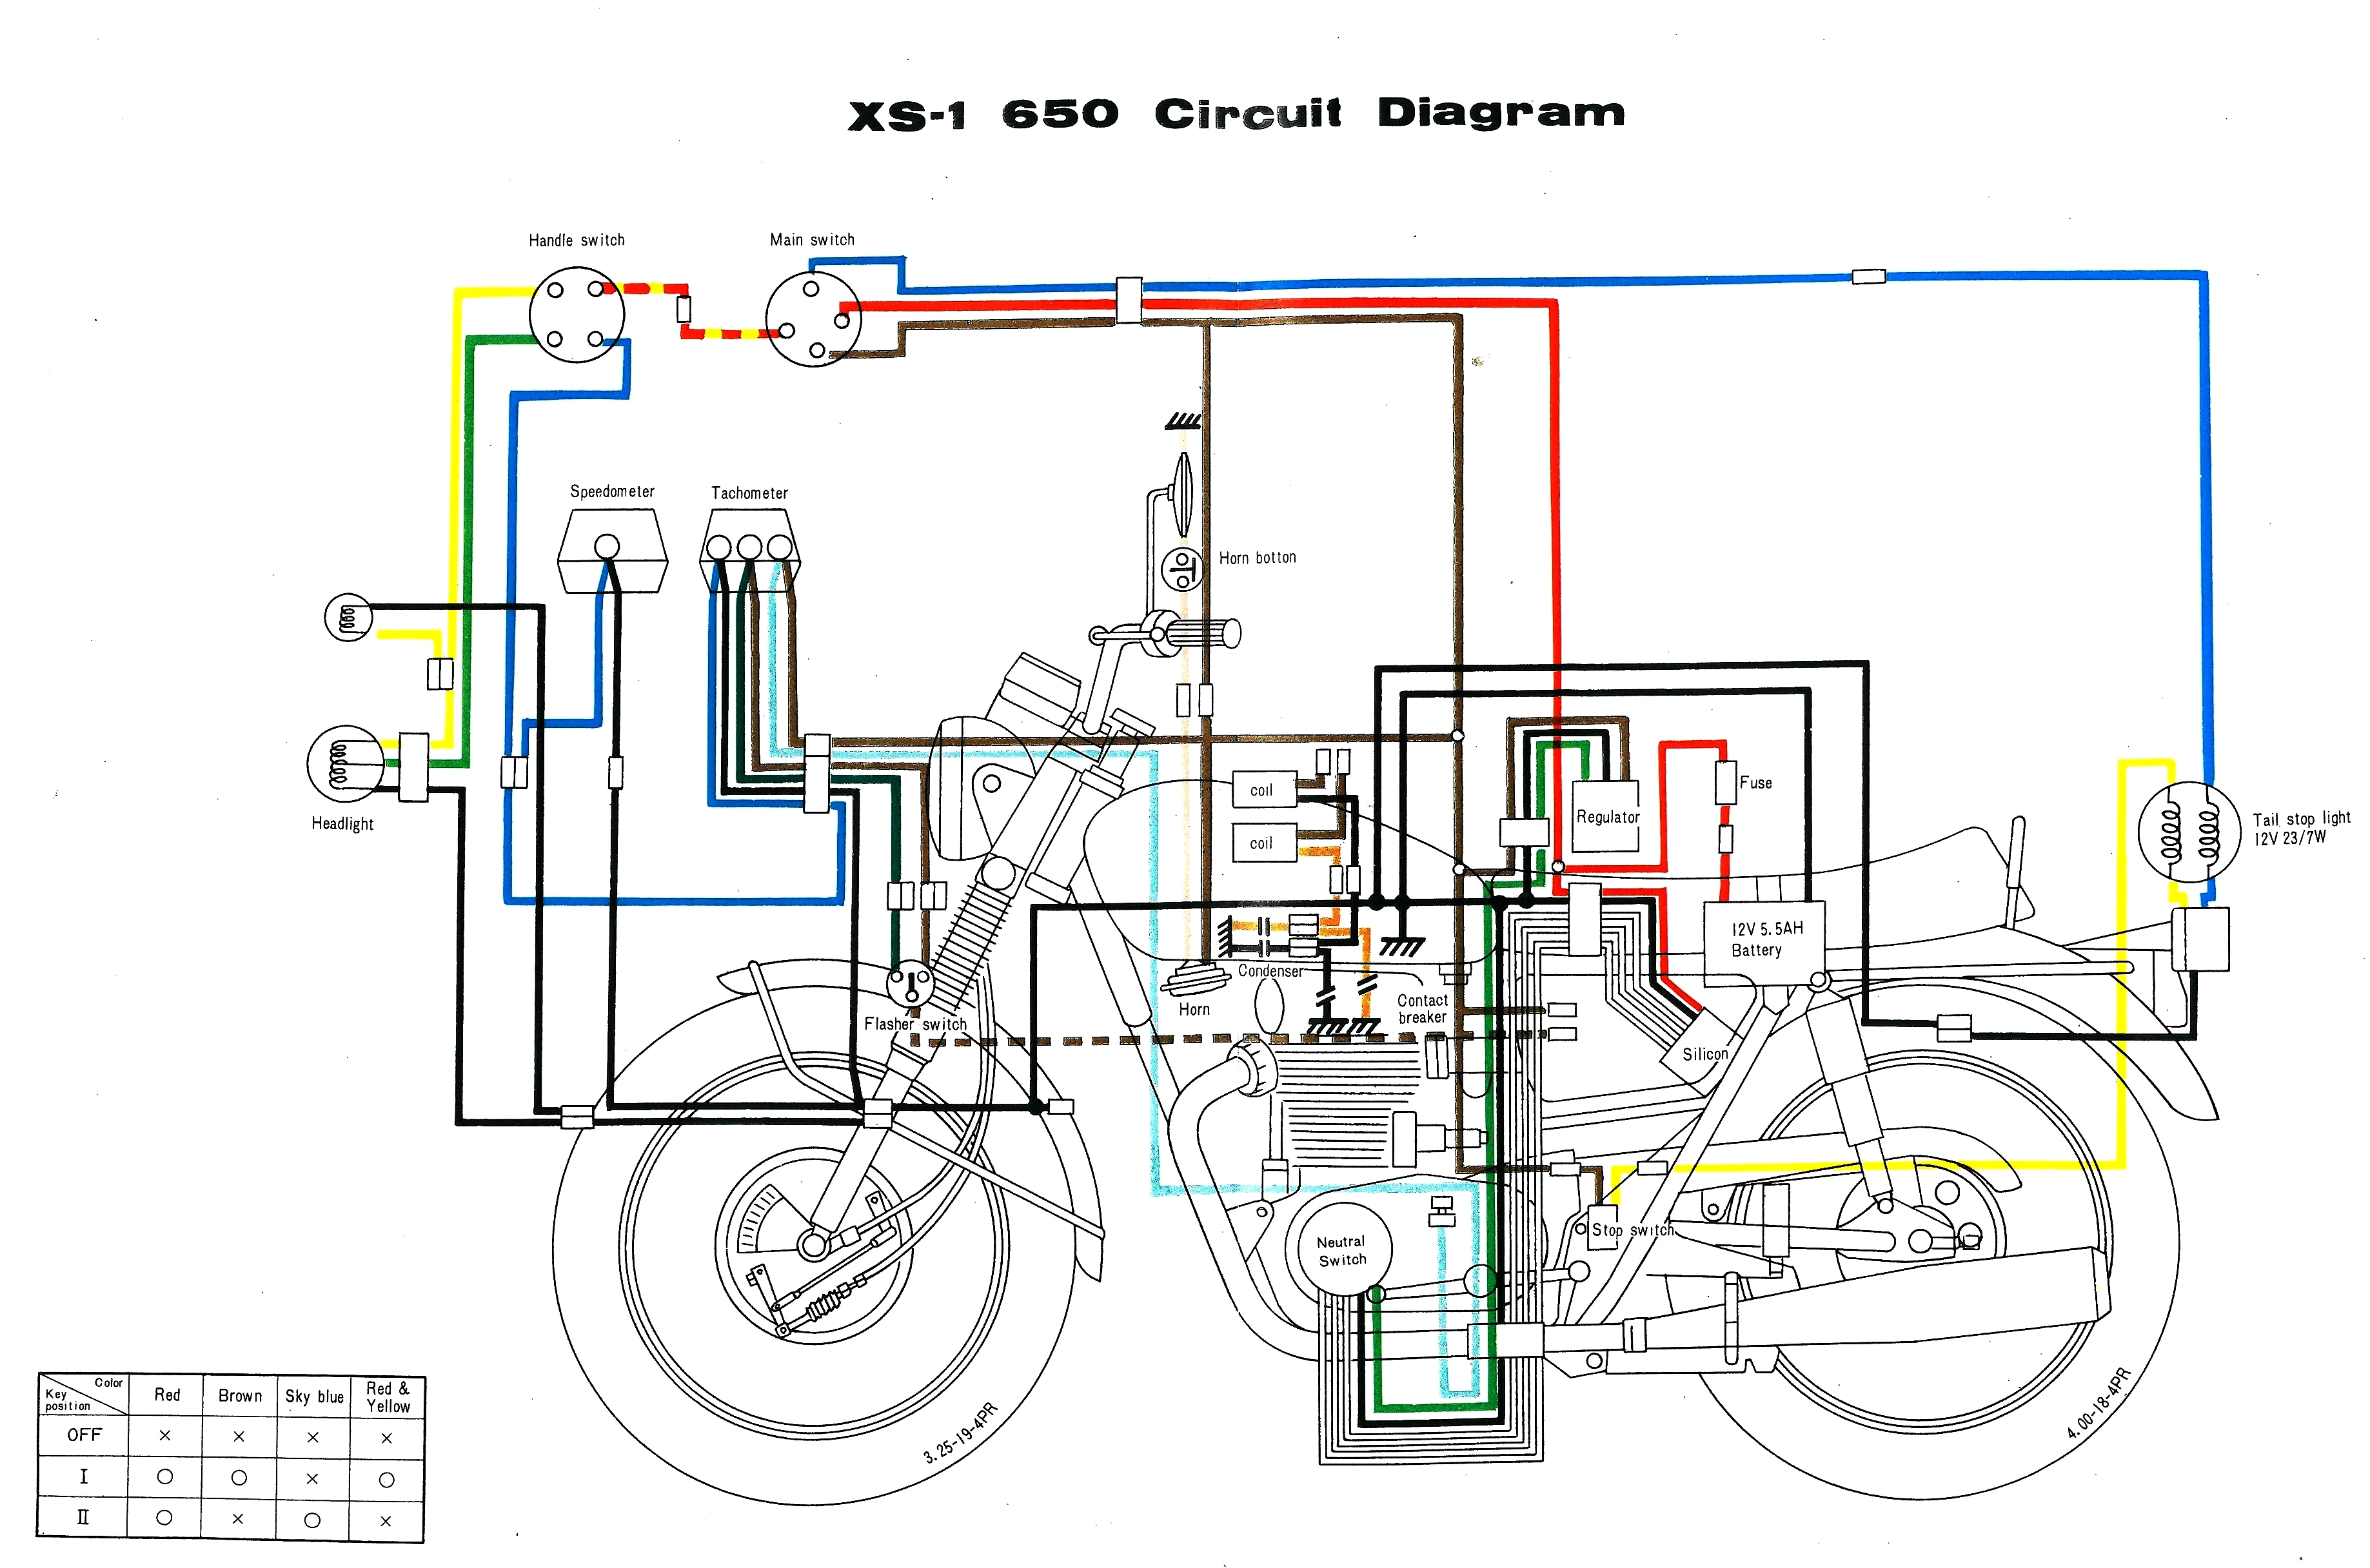 Amazing Yamaha 750 Wiring Diagram Pictures Inspiration 1976 Xs650 Wiring Diagram Xs650 Points Wiring Diagram Yamaha Xs650 Wiring Harness